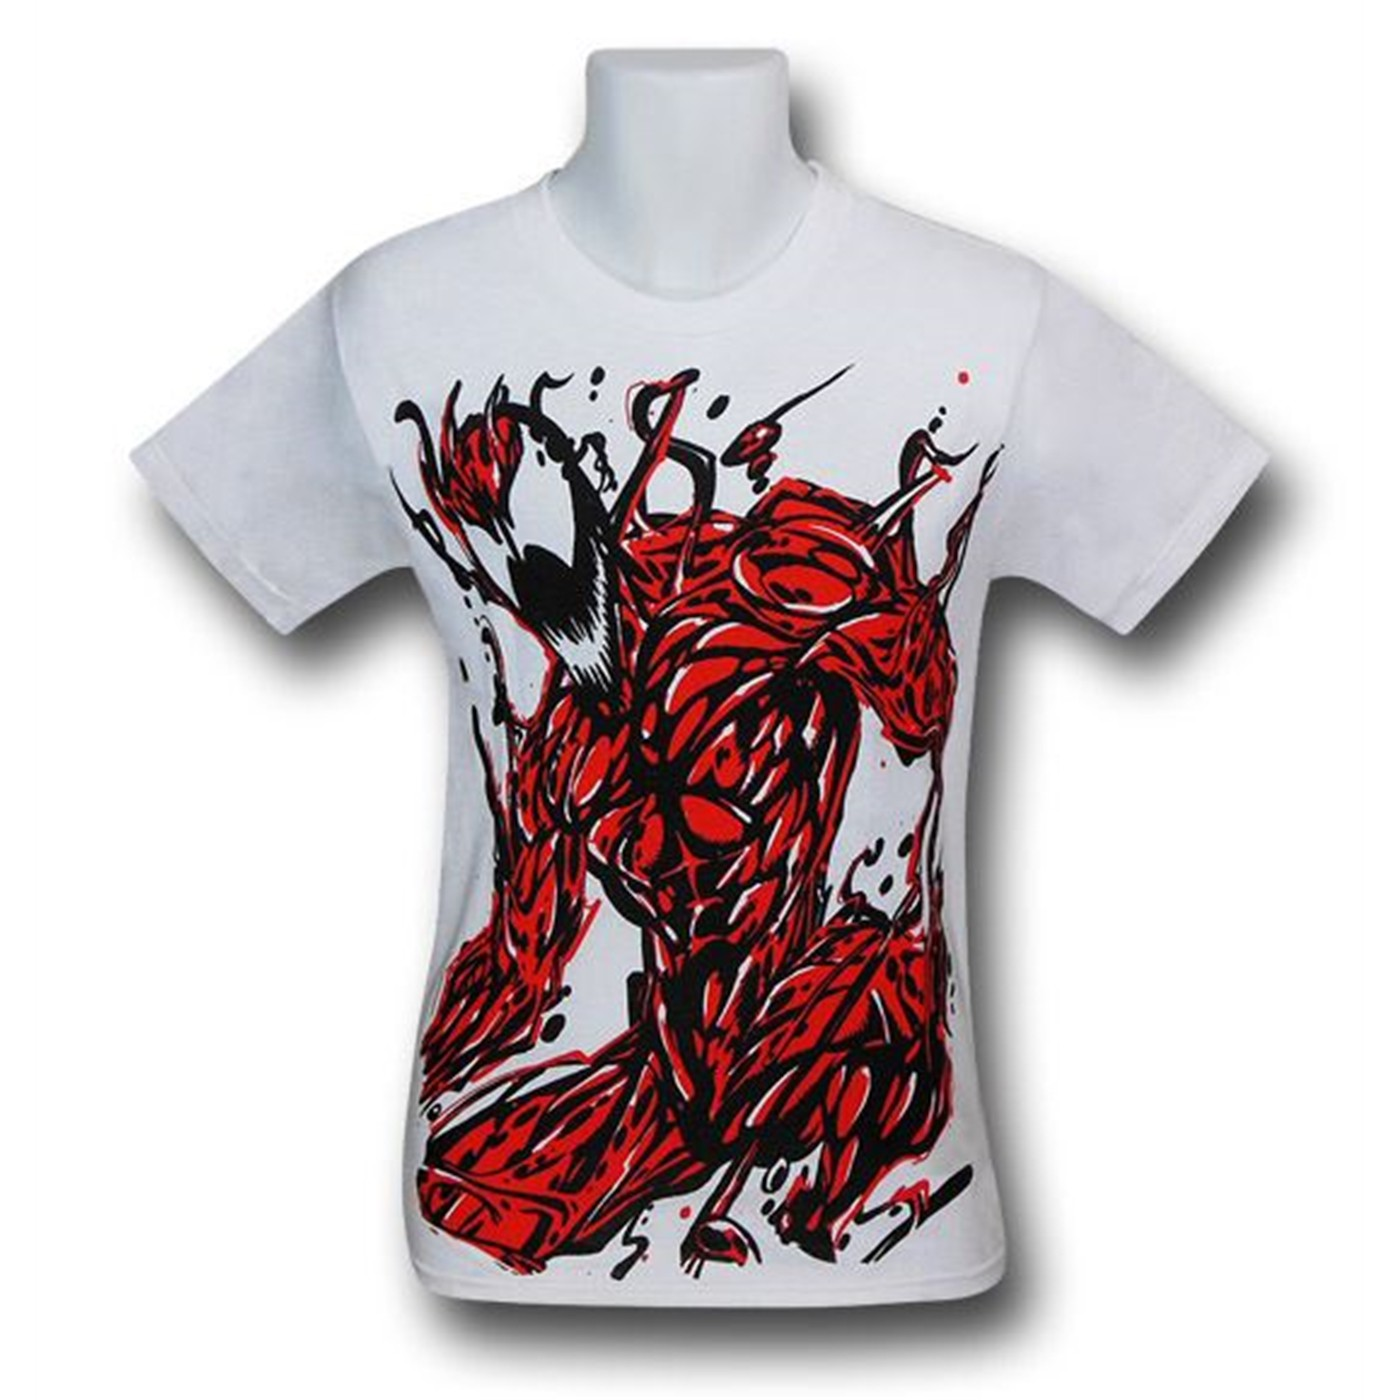 Carnage Angry Image on White T-Shirt